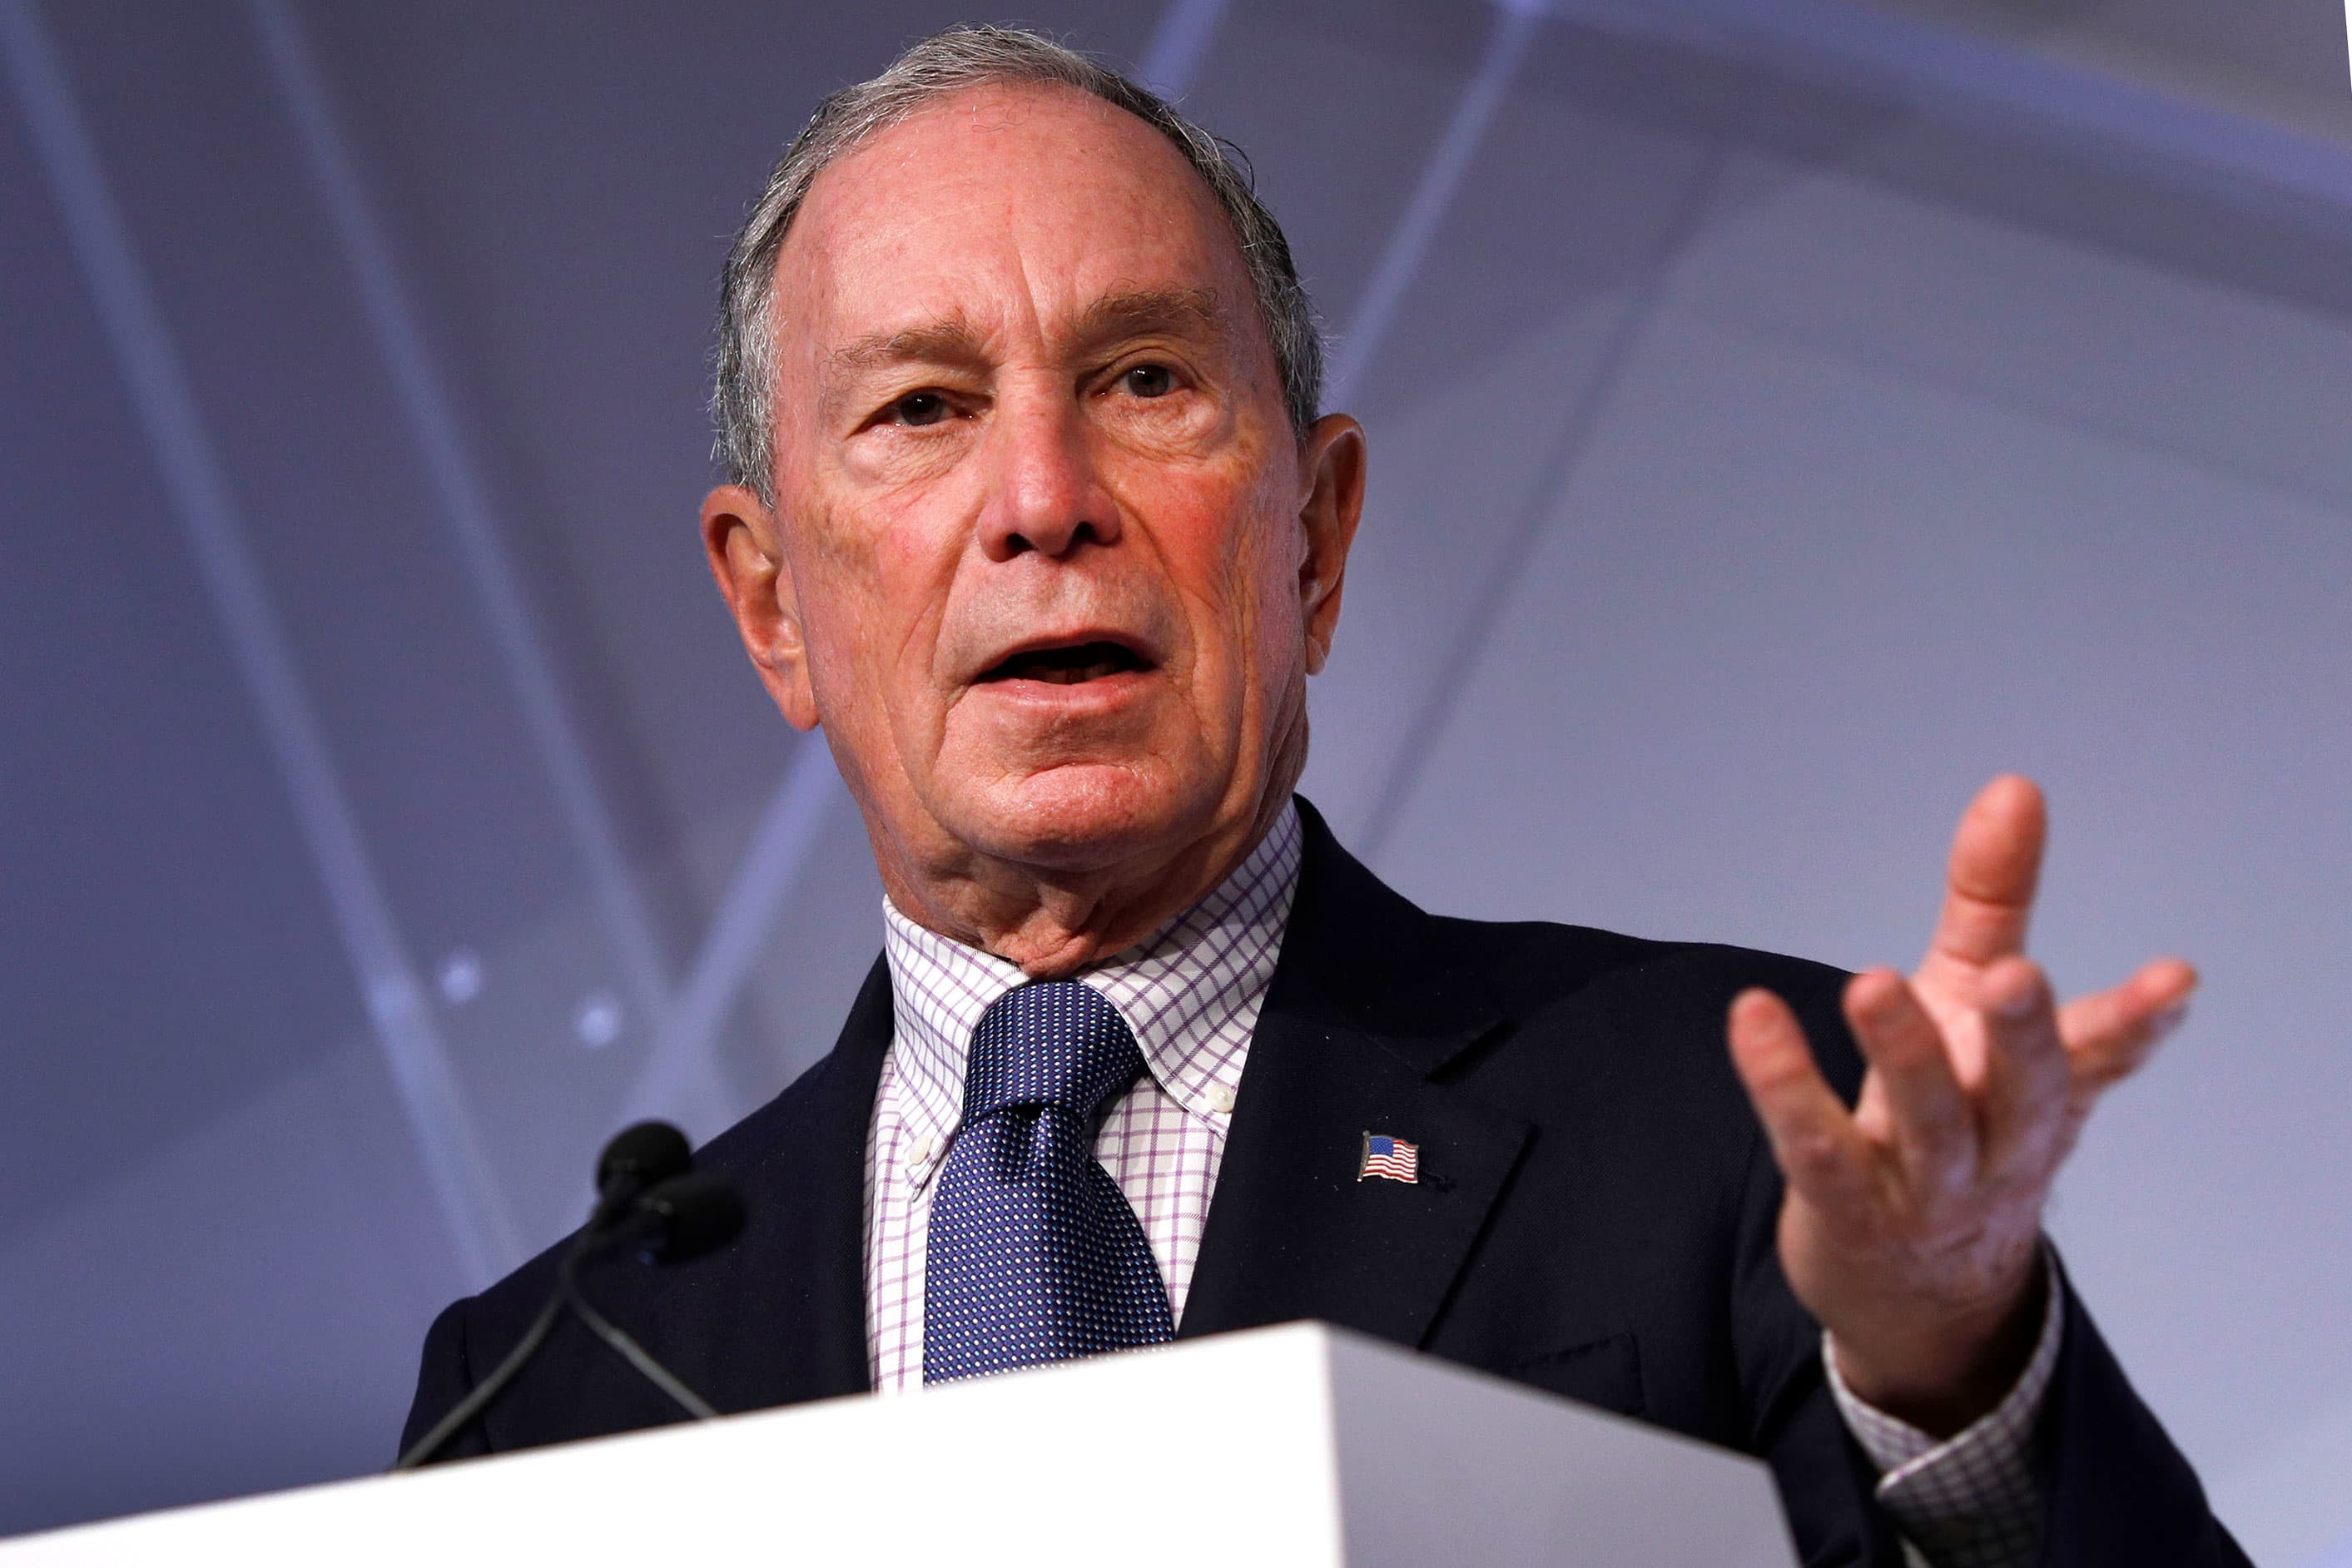 Mike Bloomberg is preparing to enter the Democratic presidential primary